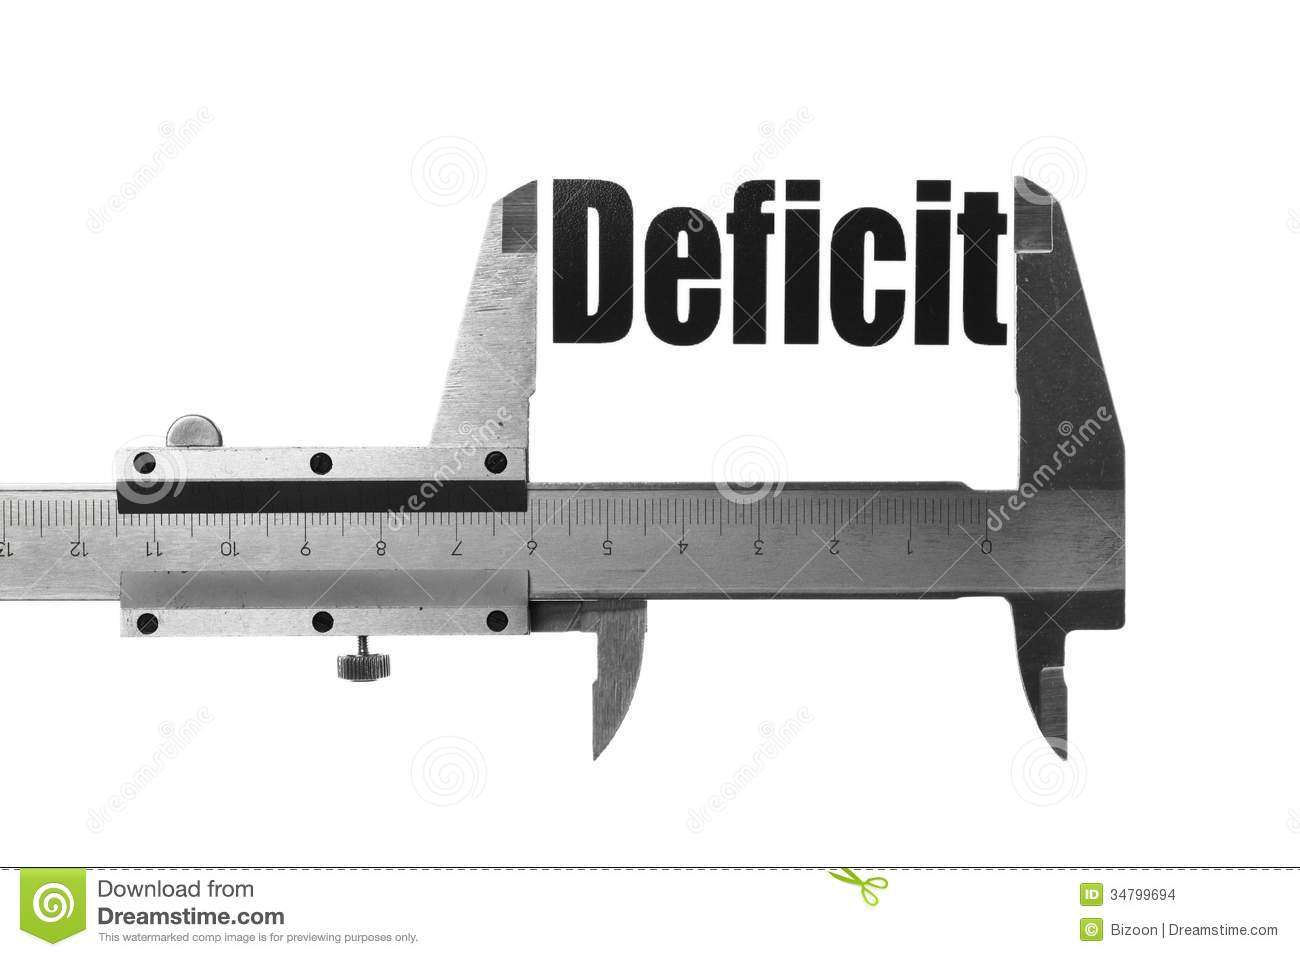 Govt Overshoots 2015 Q4 Fiscal Deficit Target by $8.5bn